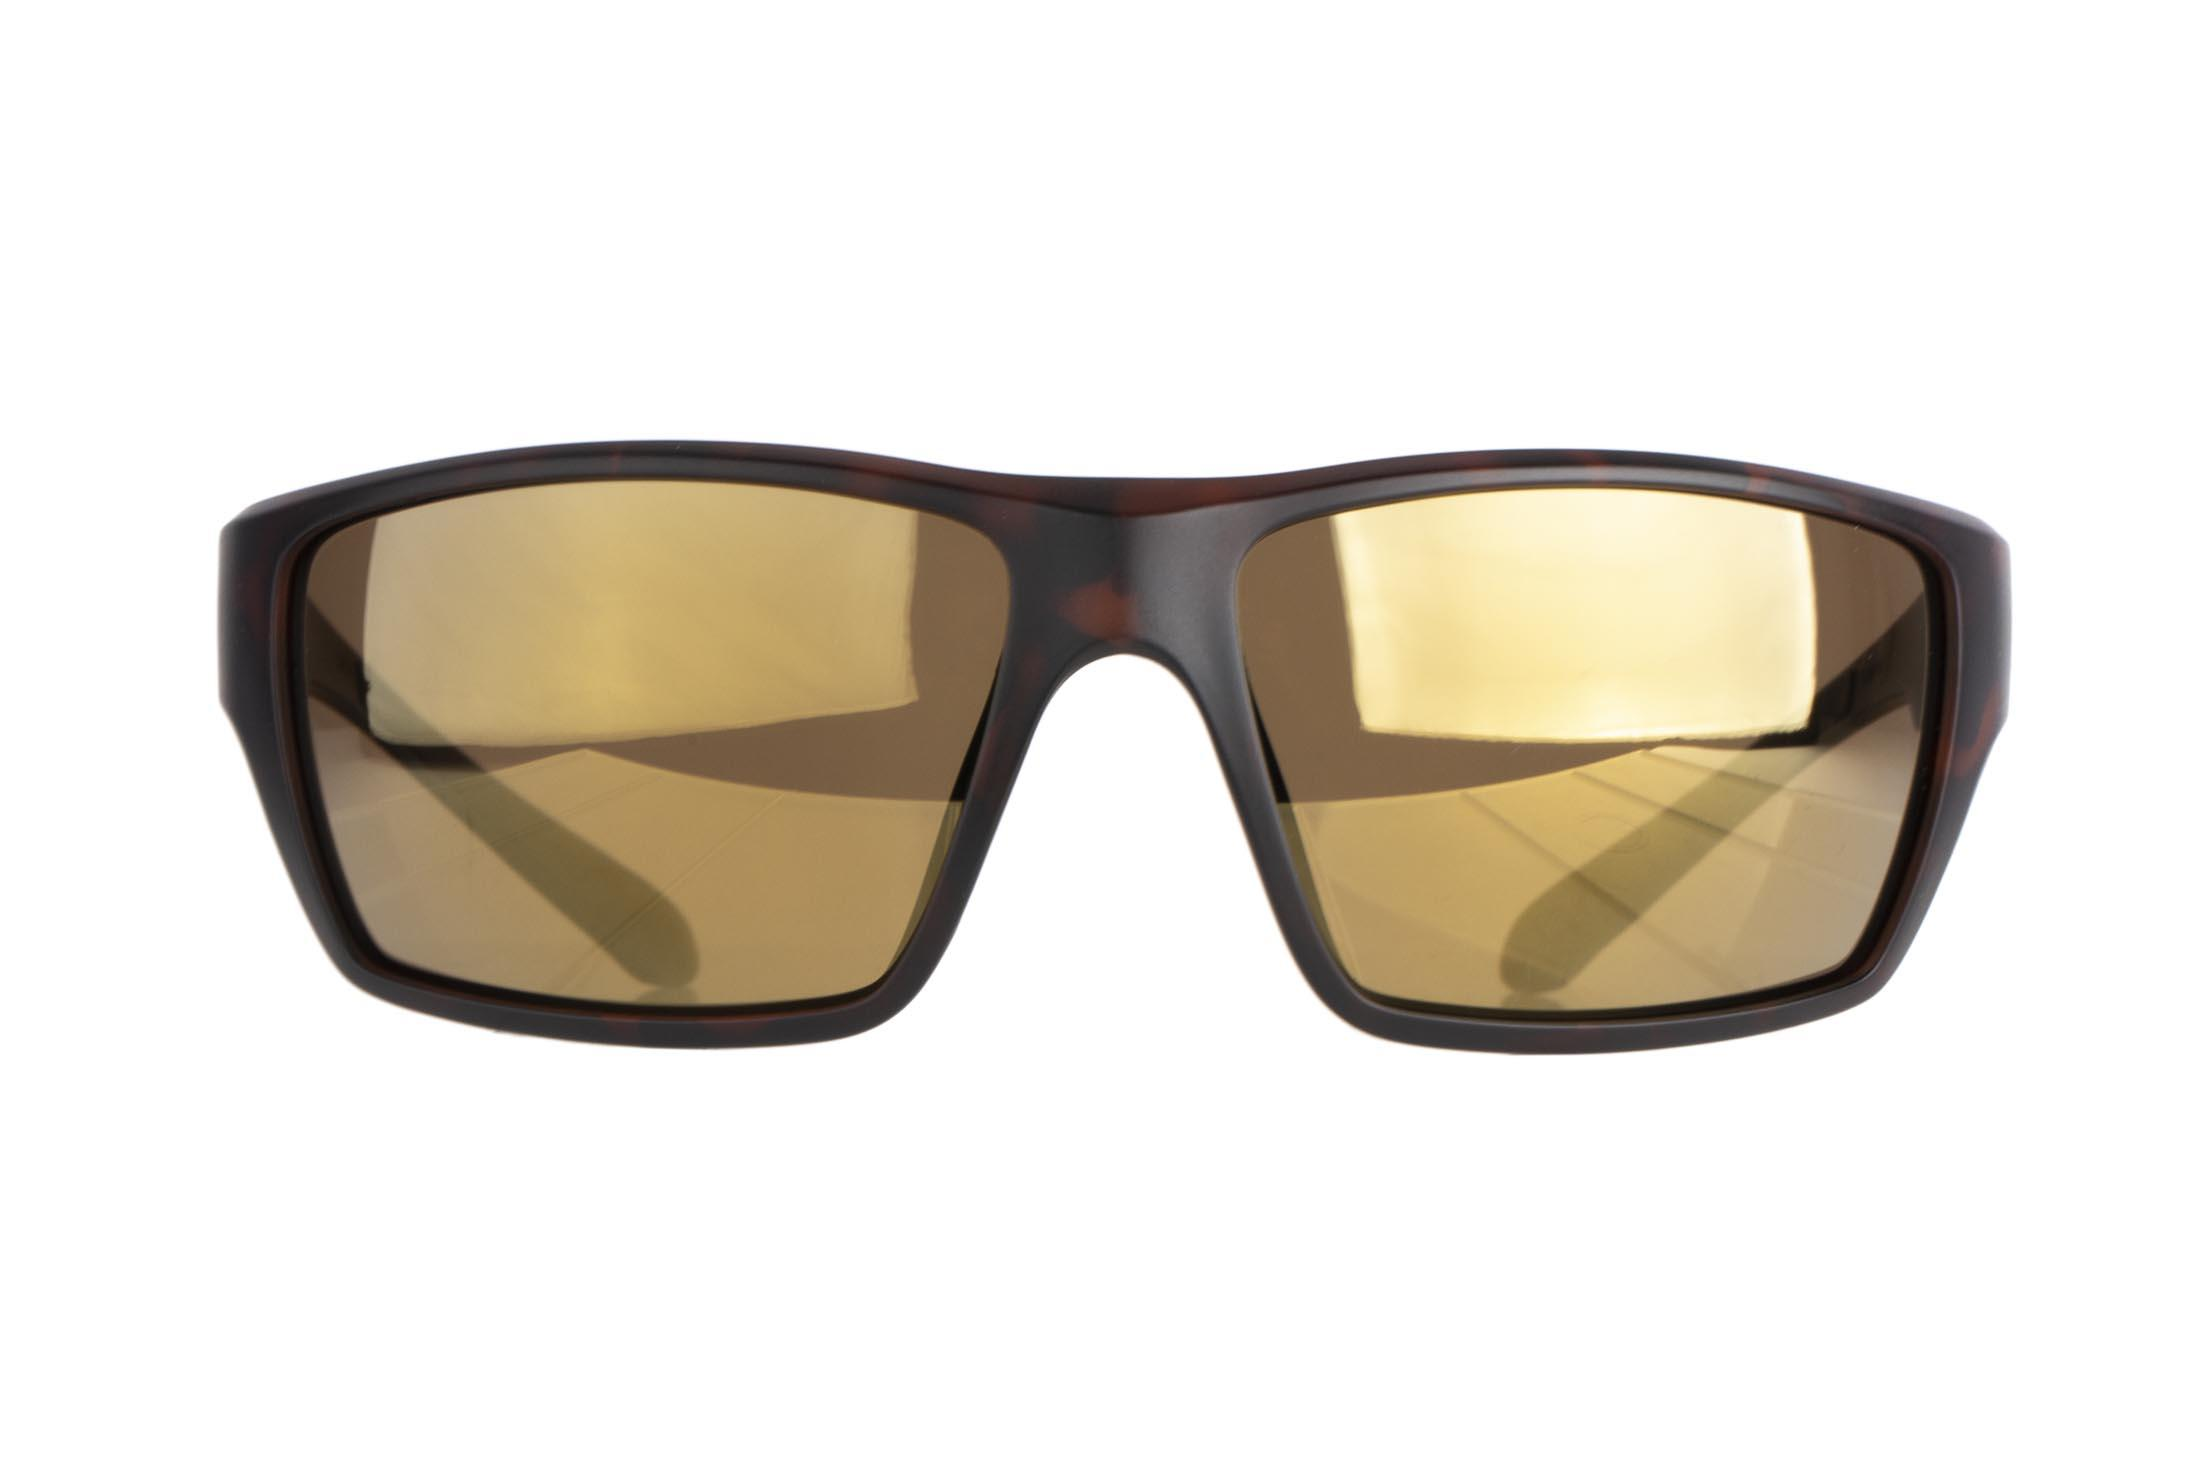 30f2f43b11b ... Magpul Terrain safety glasses tortoise frame and bronze gold polarized  lenses are made from TR90ZZ ...